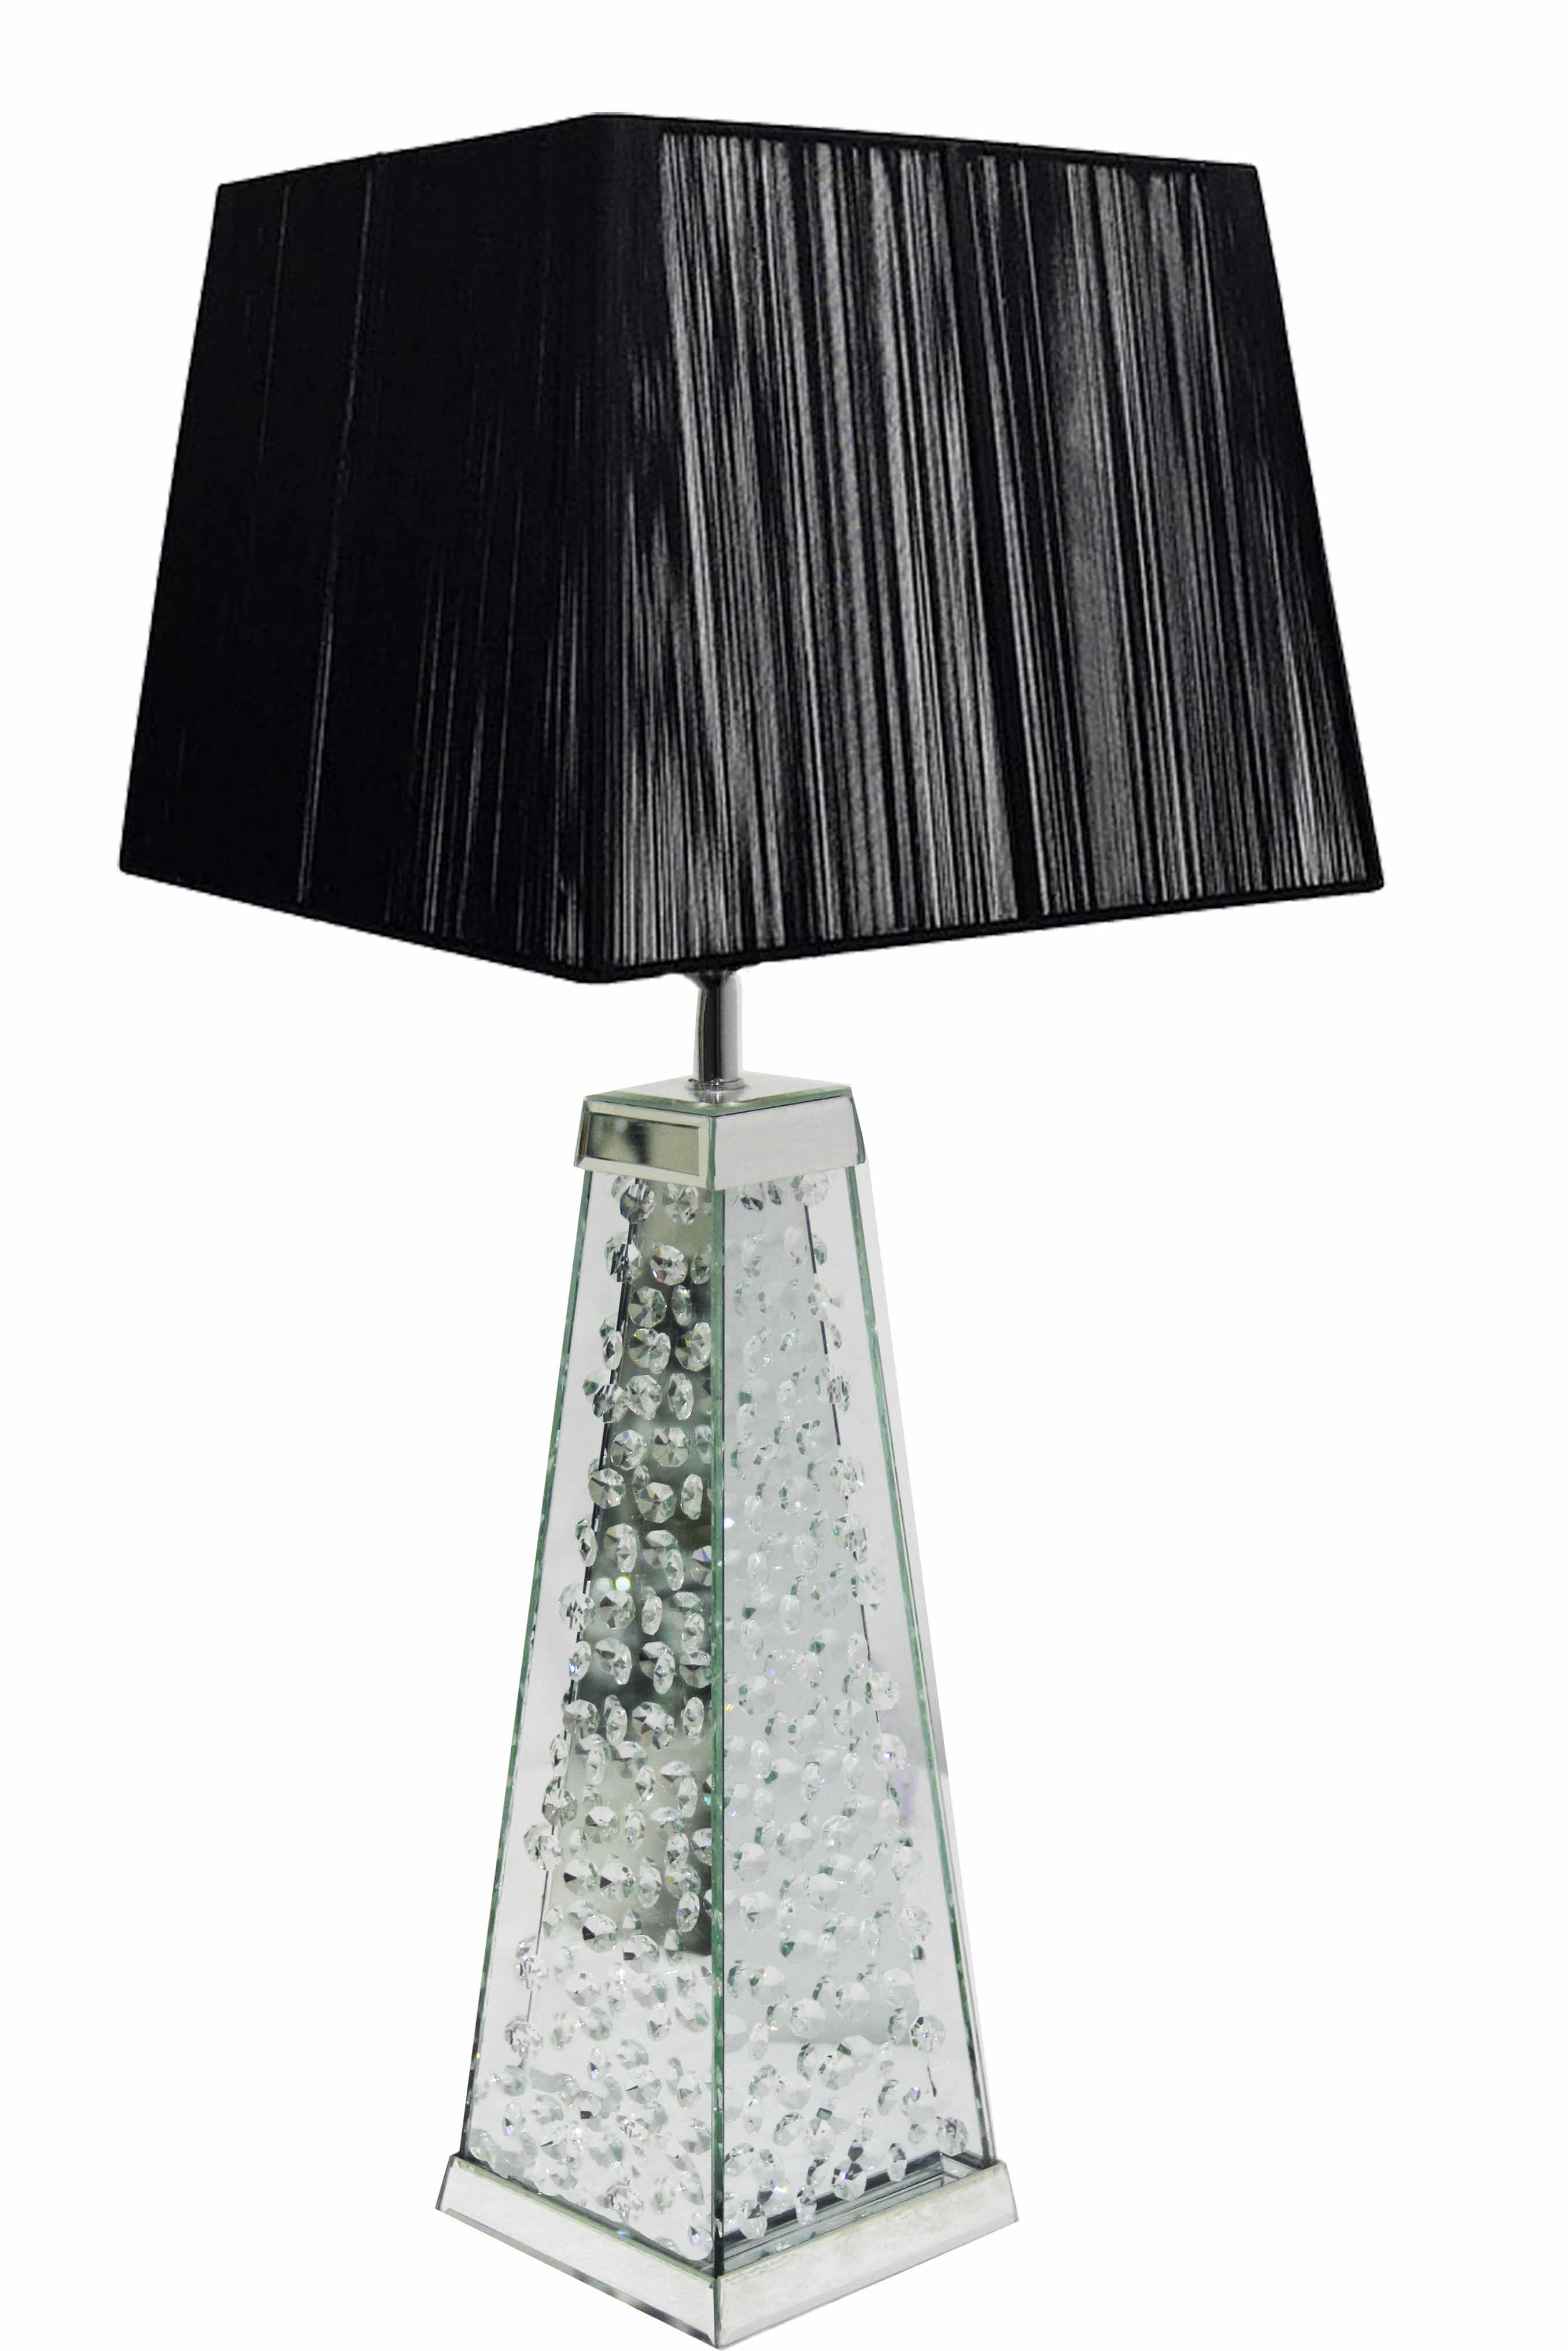 FLAOTING DIAMOND TABLE LAMP